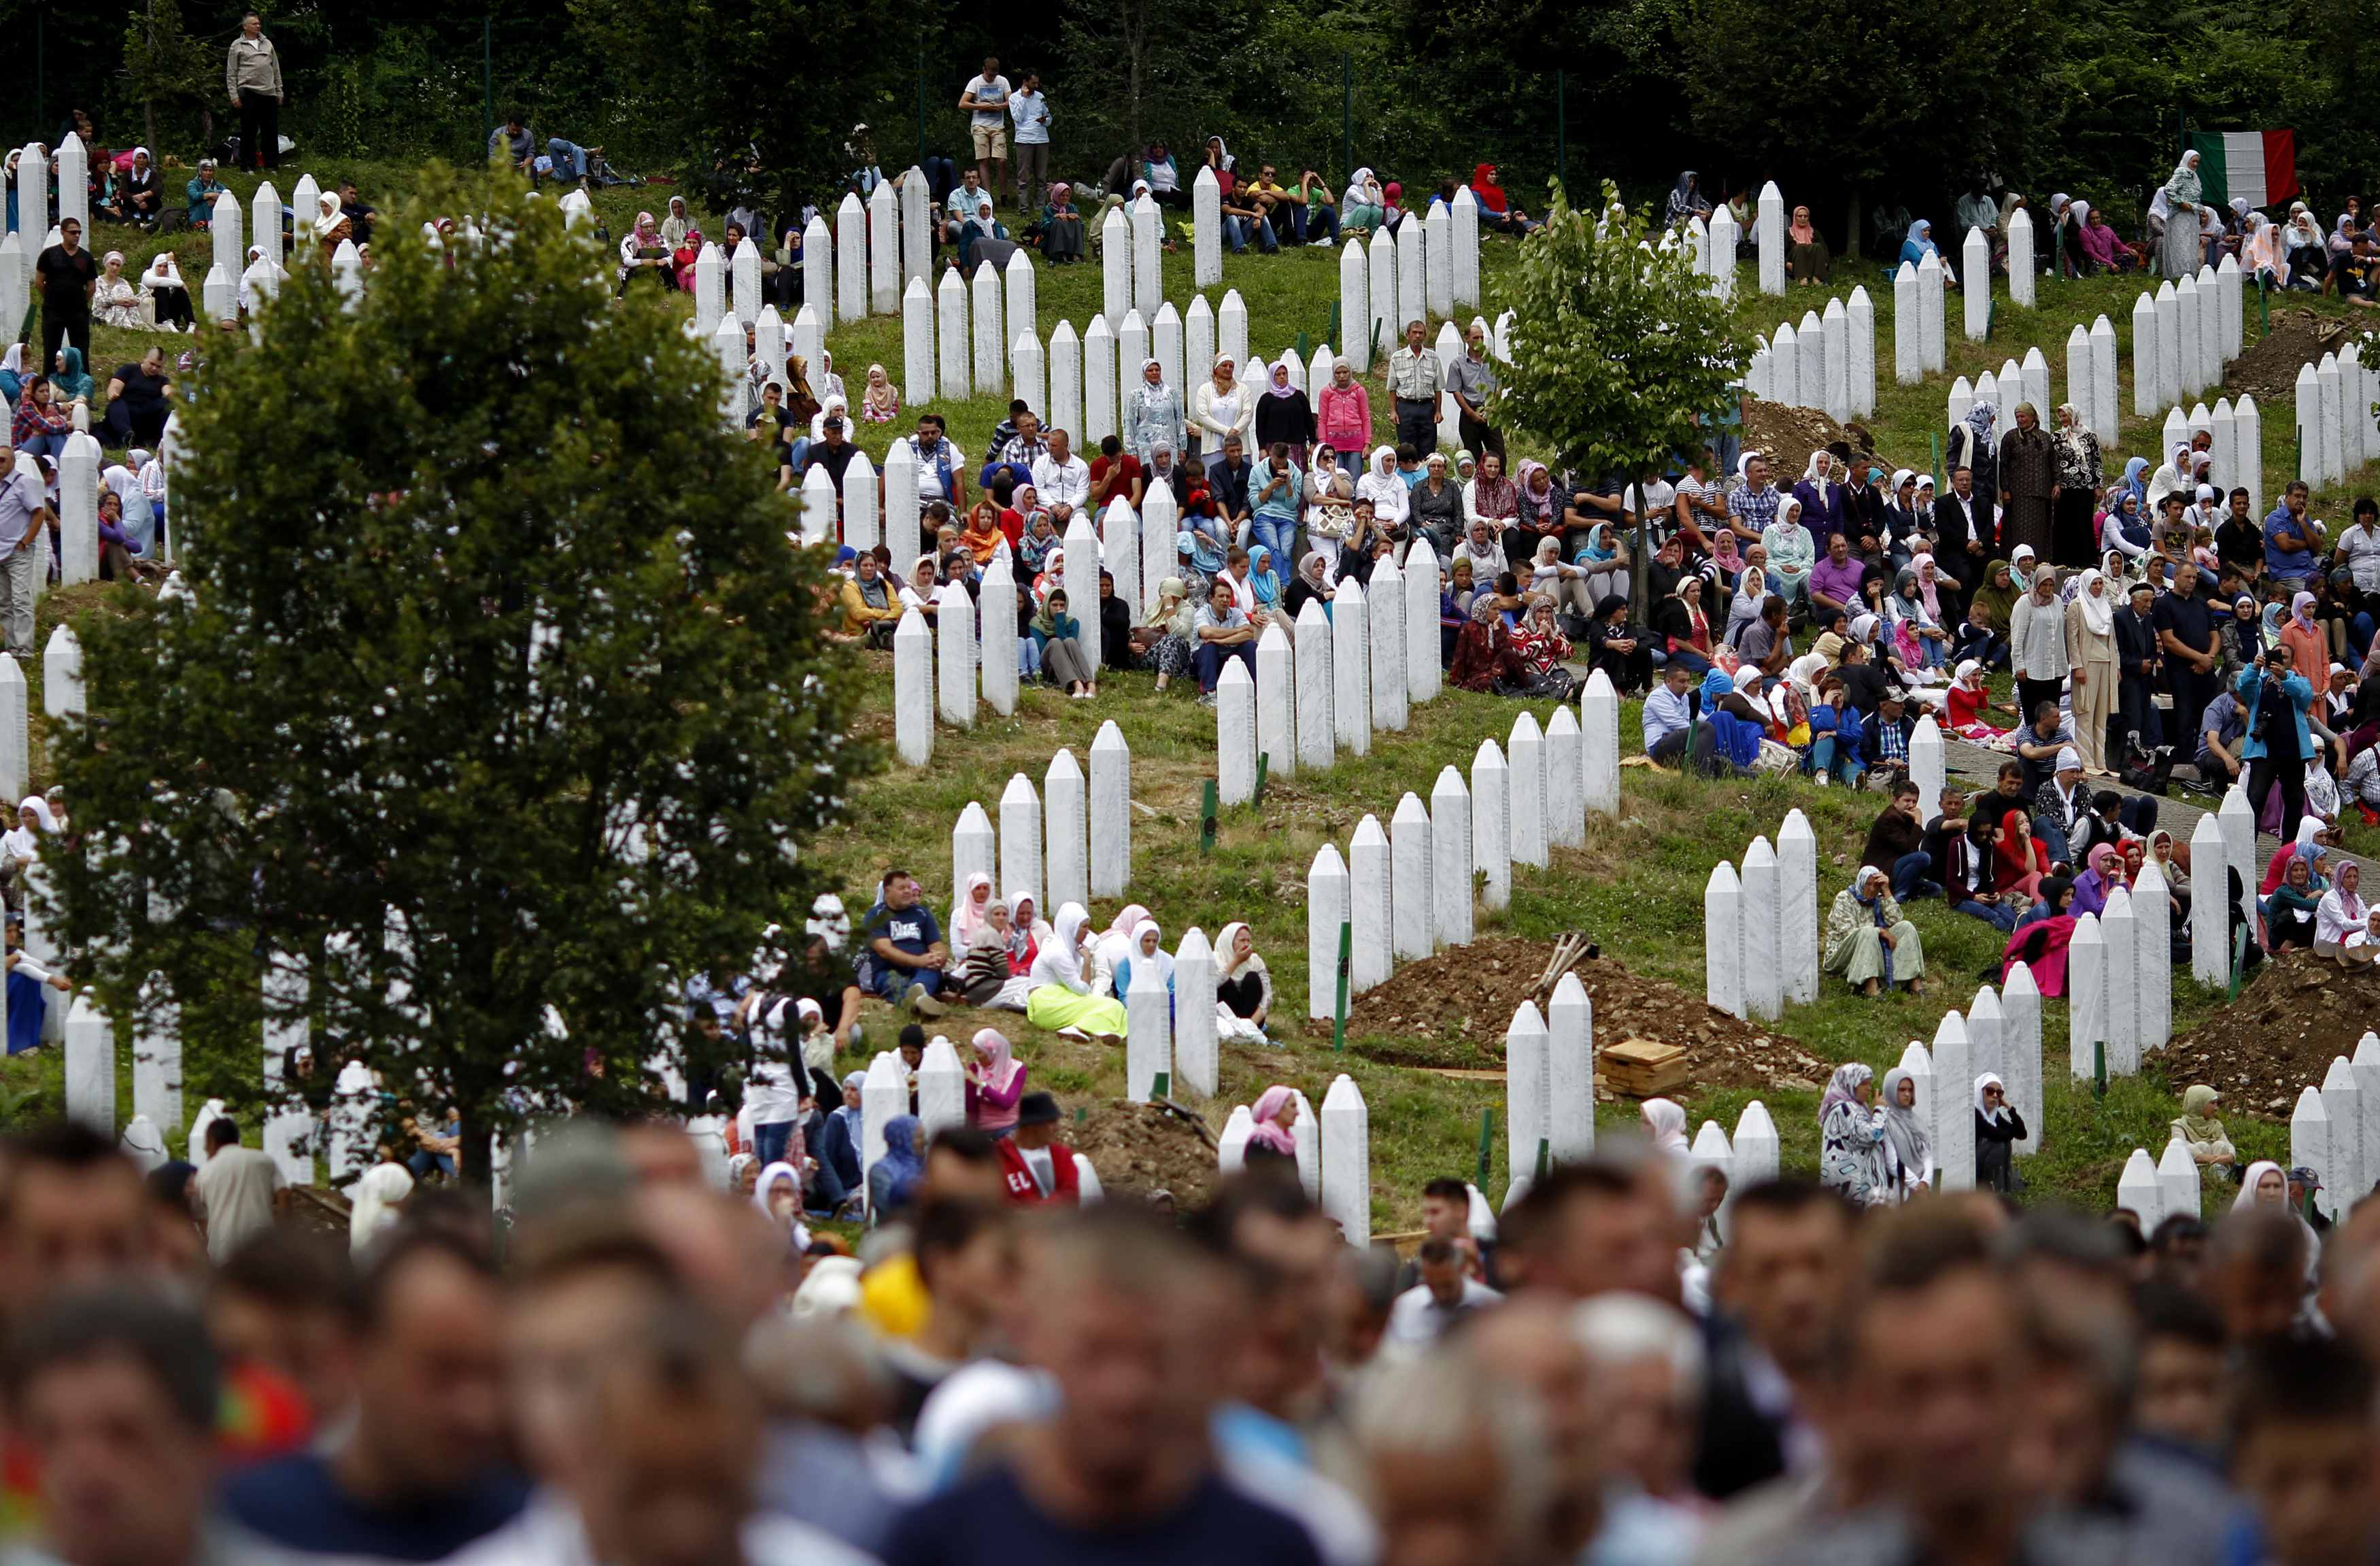 Bosnian Muslims attend the mass funeral of 175 newly identified victims from the 1995 Srebrenica massacre, in Potocari Memorial Center, near Srebrenica, July 11, 2014. Family members, foreign dignitaries and guests are expected to attend a ceremony in Sre